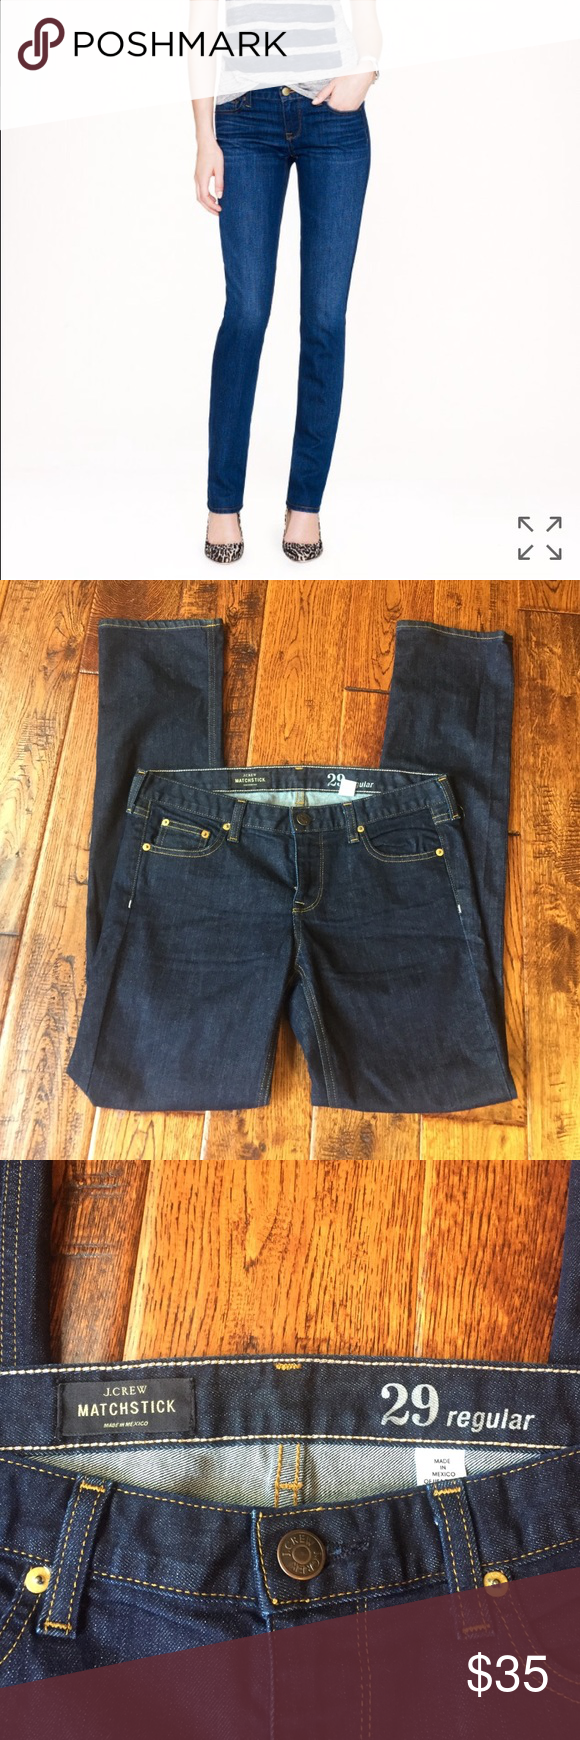 """Jcrew matchstick jeans in sutton wash Sits on hips. Slim through hip and thigh, with a slim, straight leg. 31"""" inseam. Excellent condition. Barely worn J. Crew Jeans"""